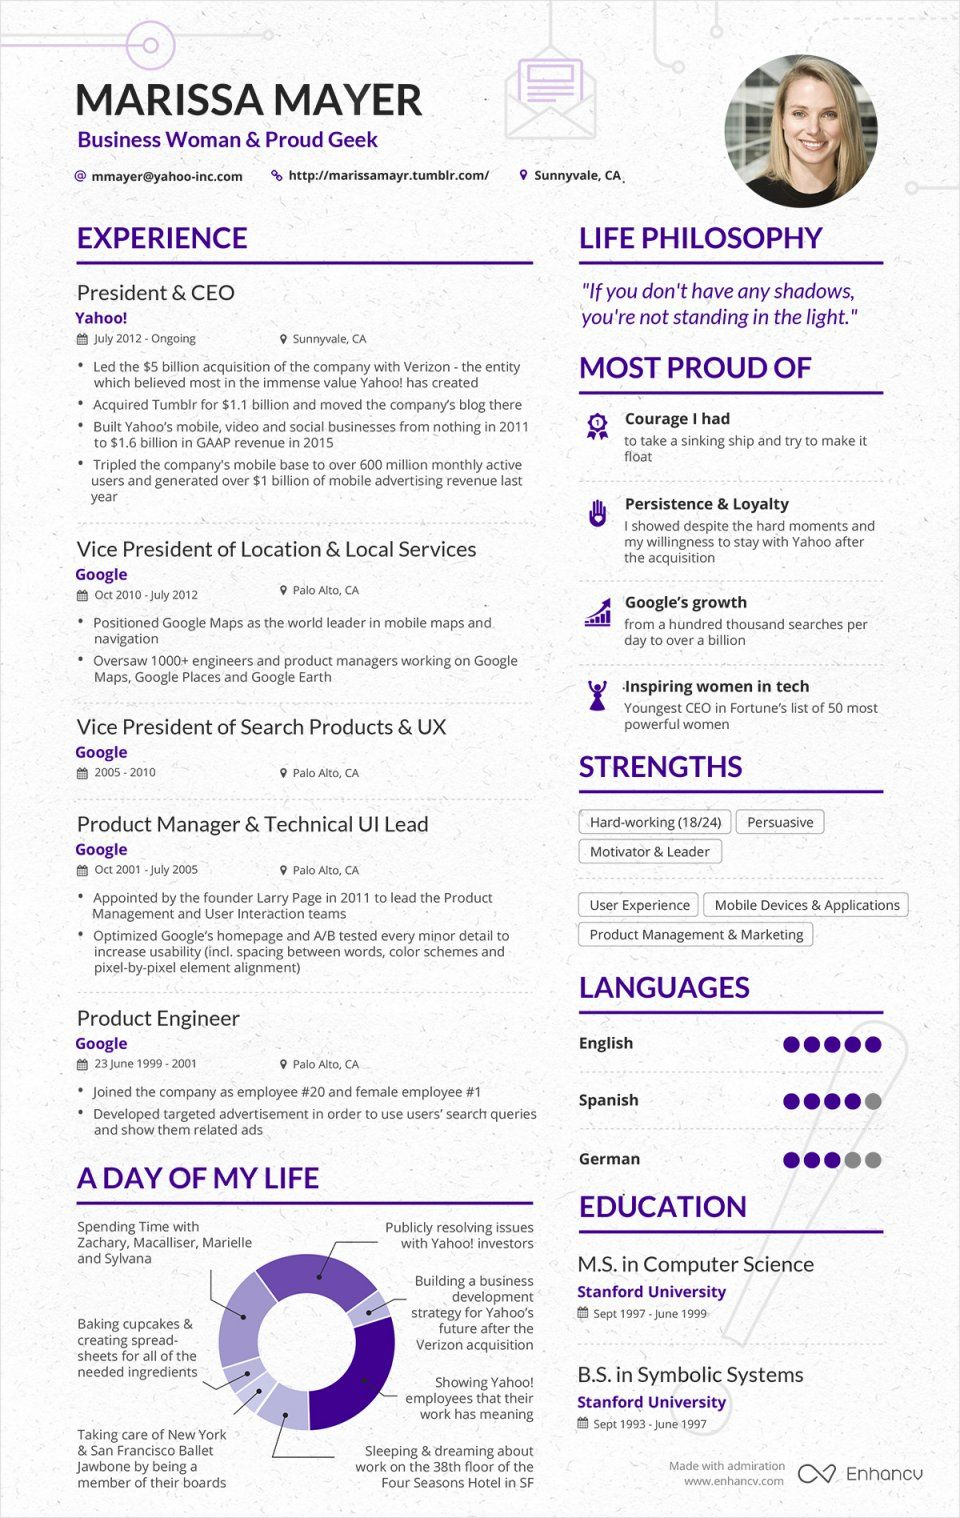 resume Things Needed On A Resume internship resume sample 7 taleo ats screenshot graphics heres a rsum for marissa mayer would you hire her things